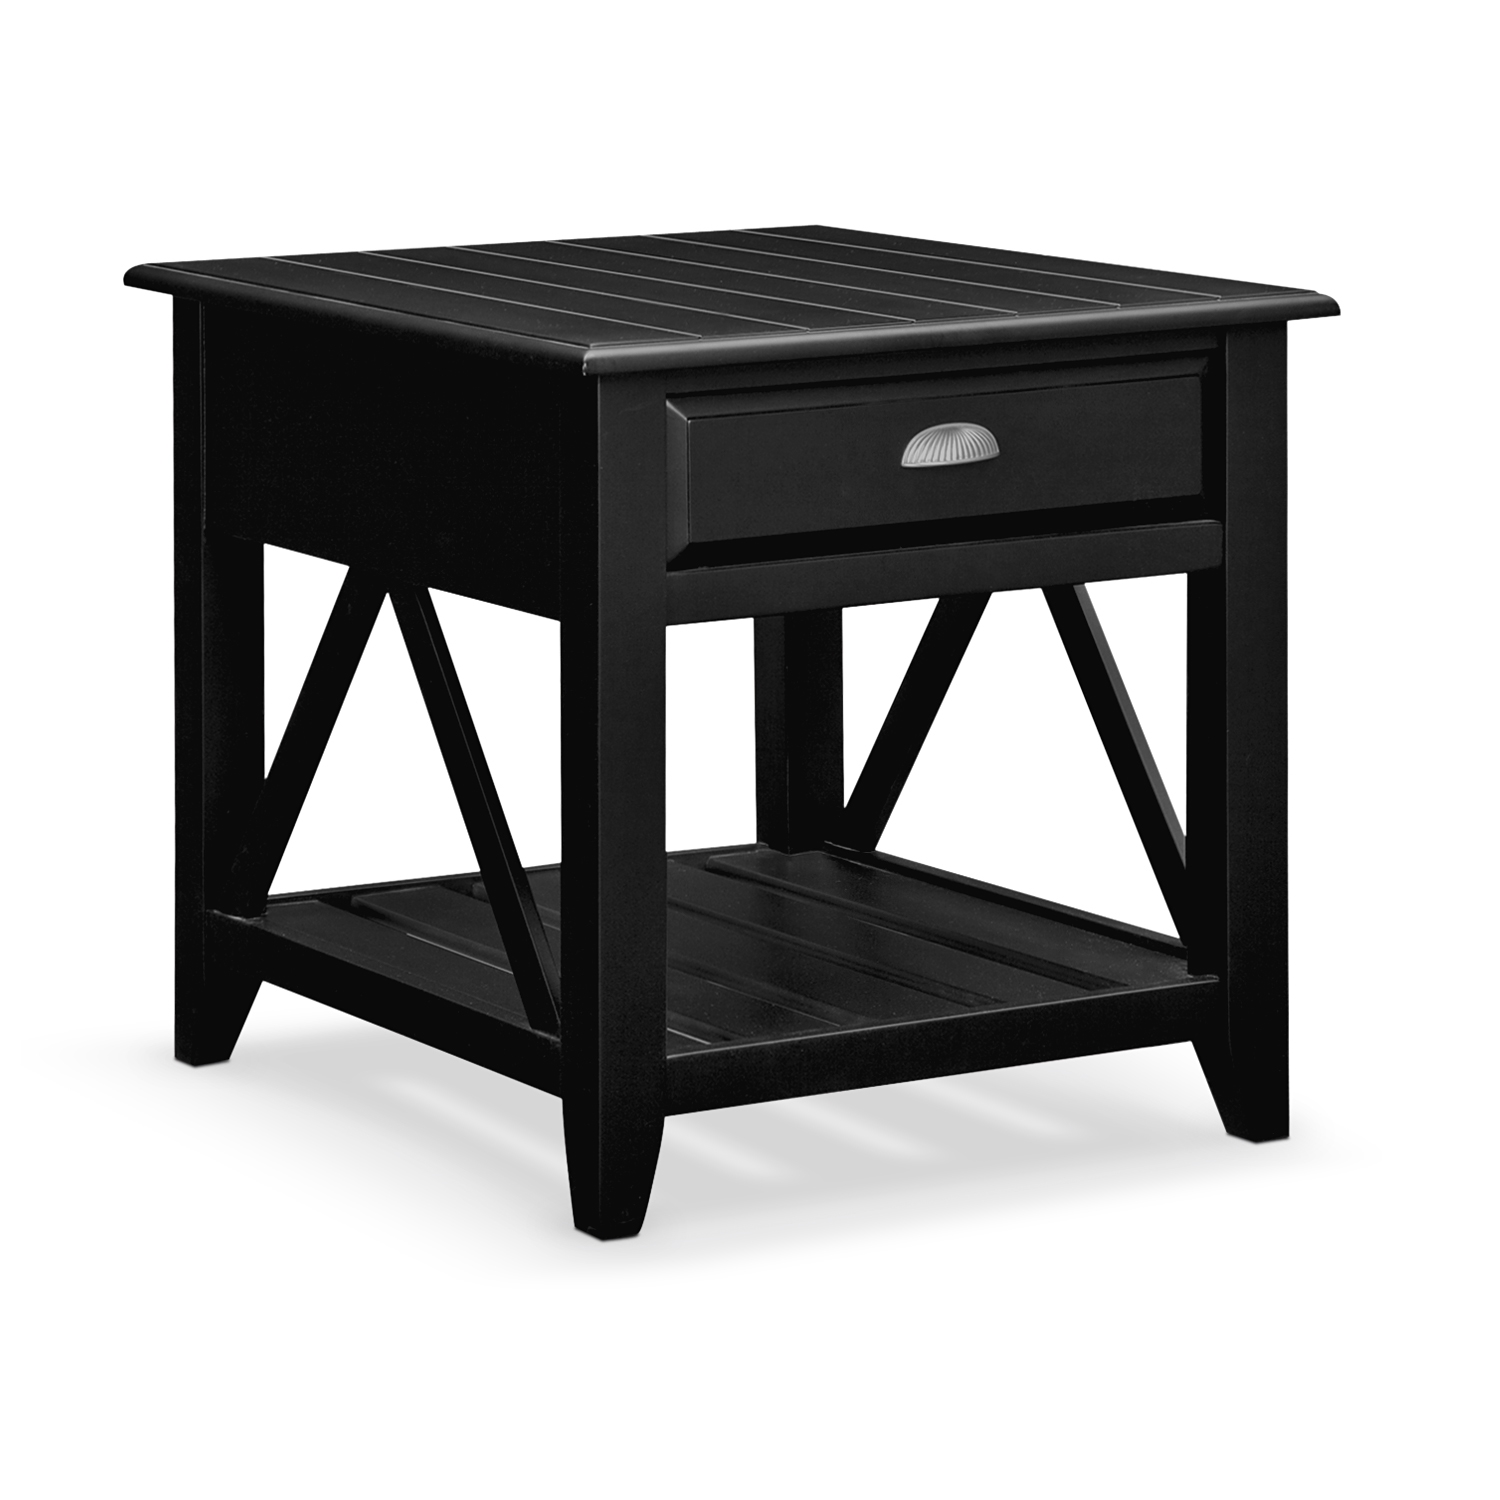 solid black coffee table the fantastic awesome skinny end decoration innovative pedestal design ideas with drawer ture white lacquer floating nightstand bench plans small bedside